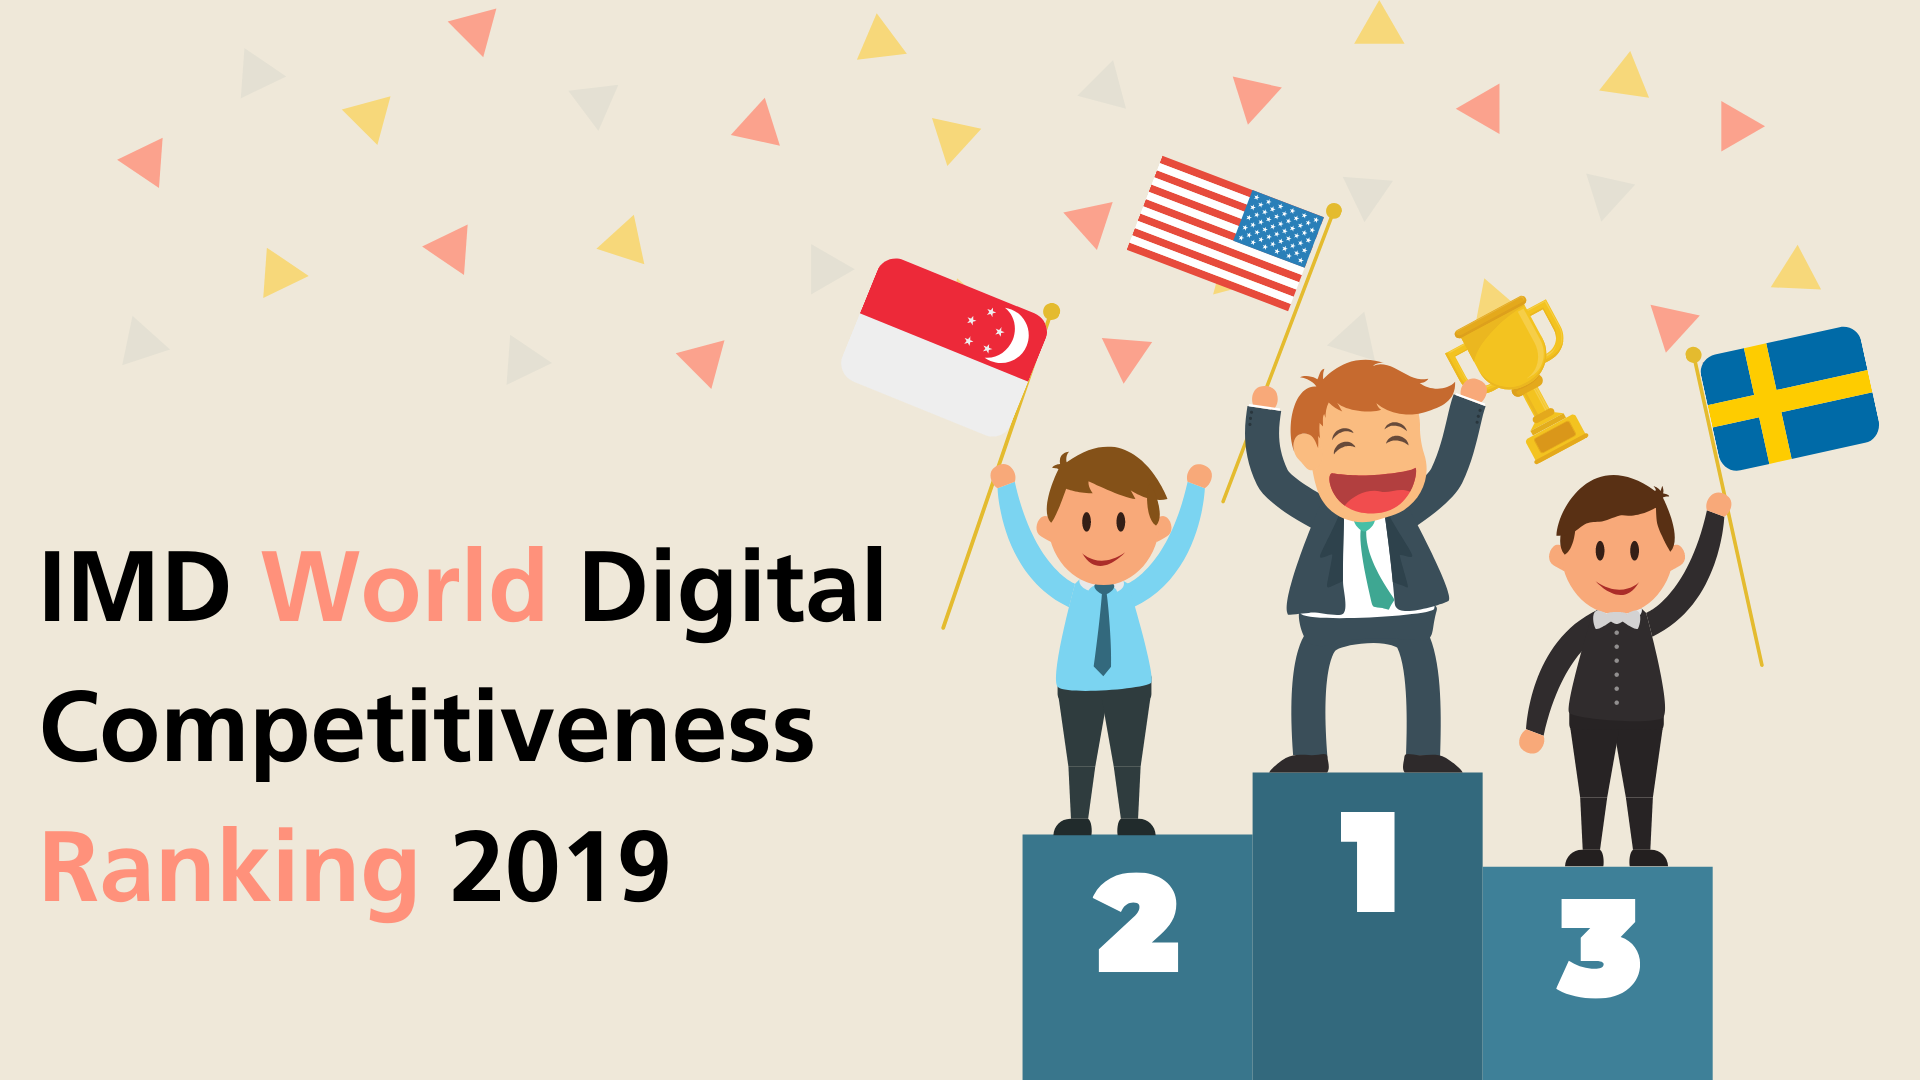 The top 3 position for the IMD World Digital Competitiveness Ranking 2019 consists in order are USA, Singapore and Sweden with the people representing their country celebrating this achievement.